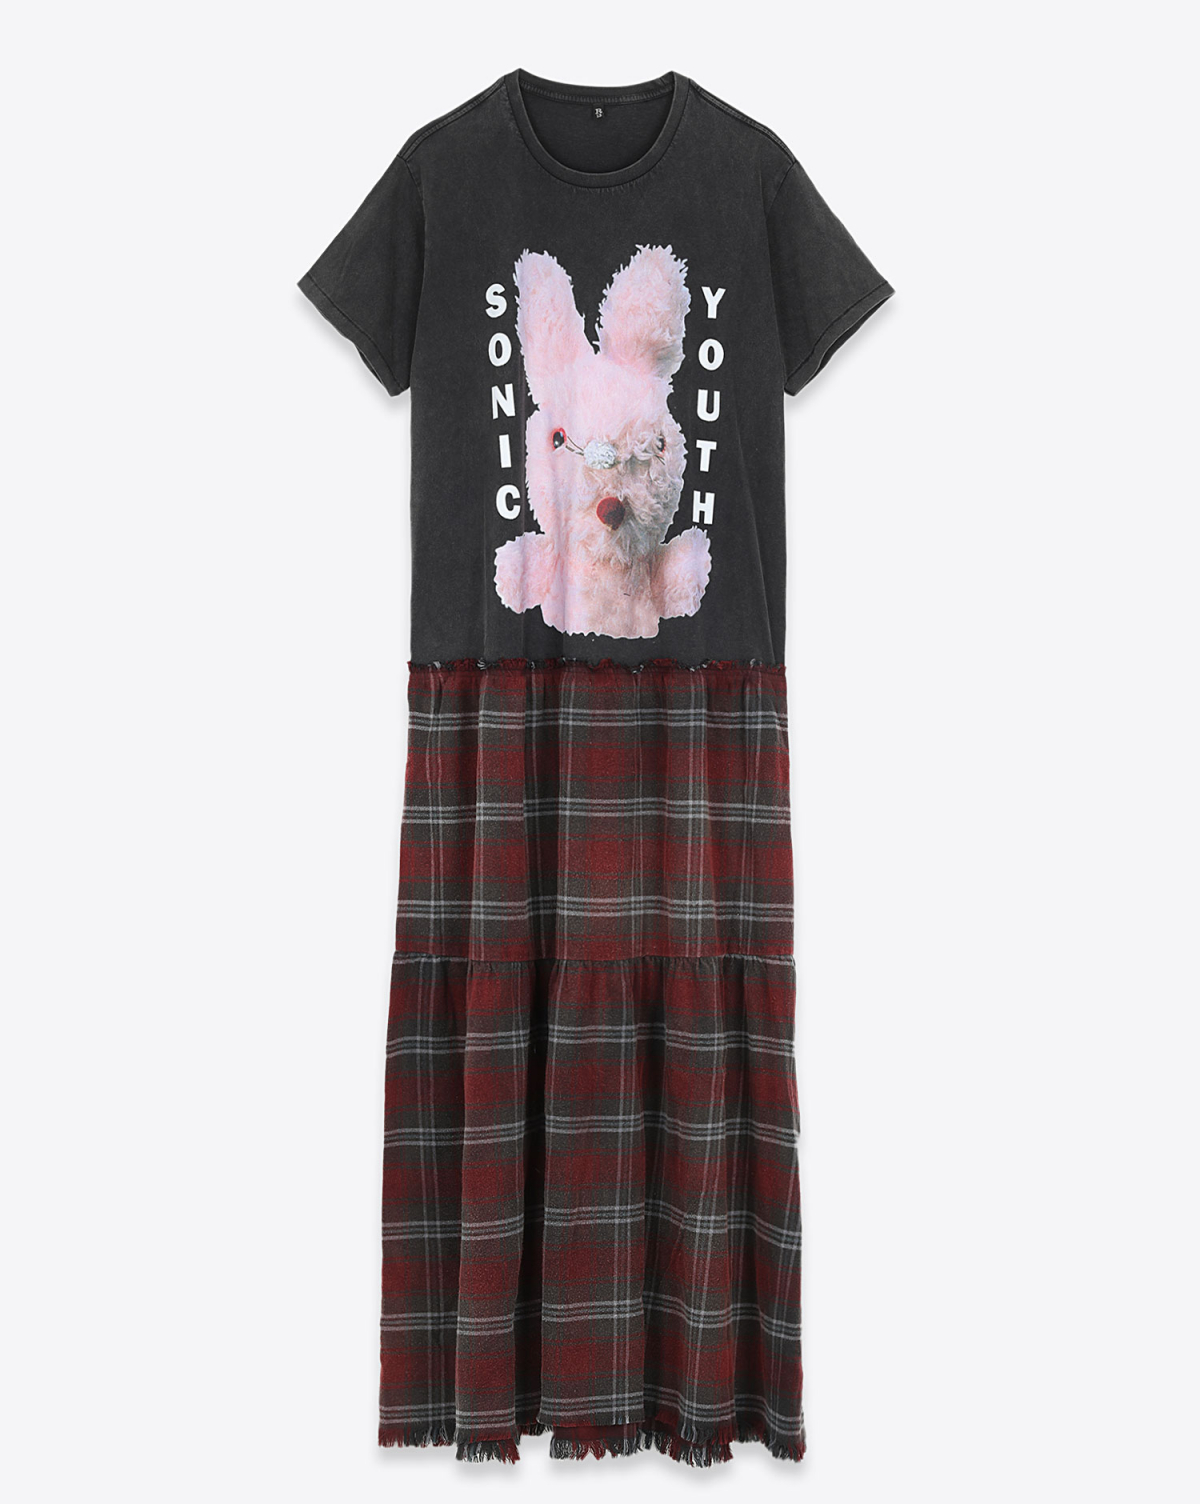 R13 Denim Collection Sonic Youth Bunny Dress - Blk W/Overdyed Red Plaid